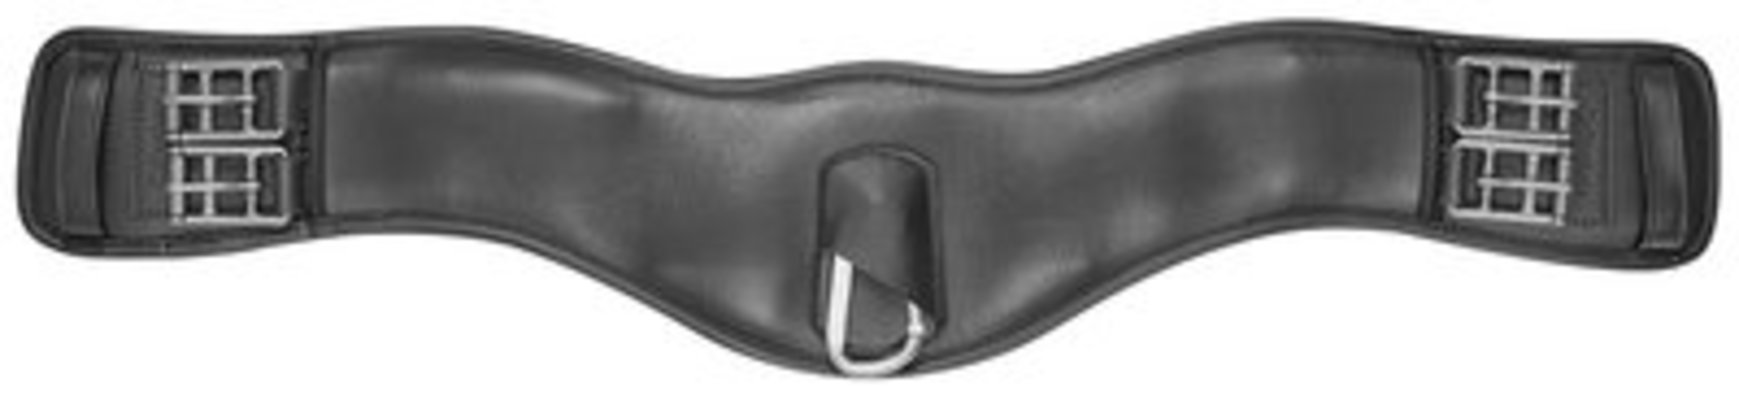 Collegiate Anatomic Dressage Girth